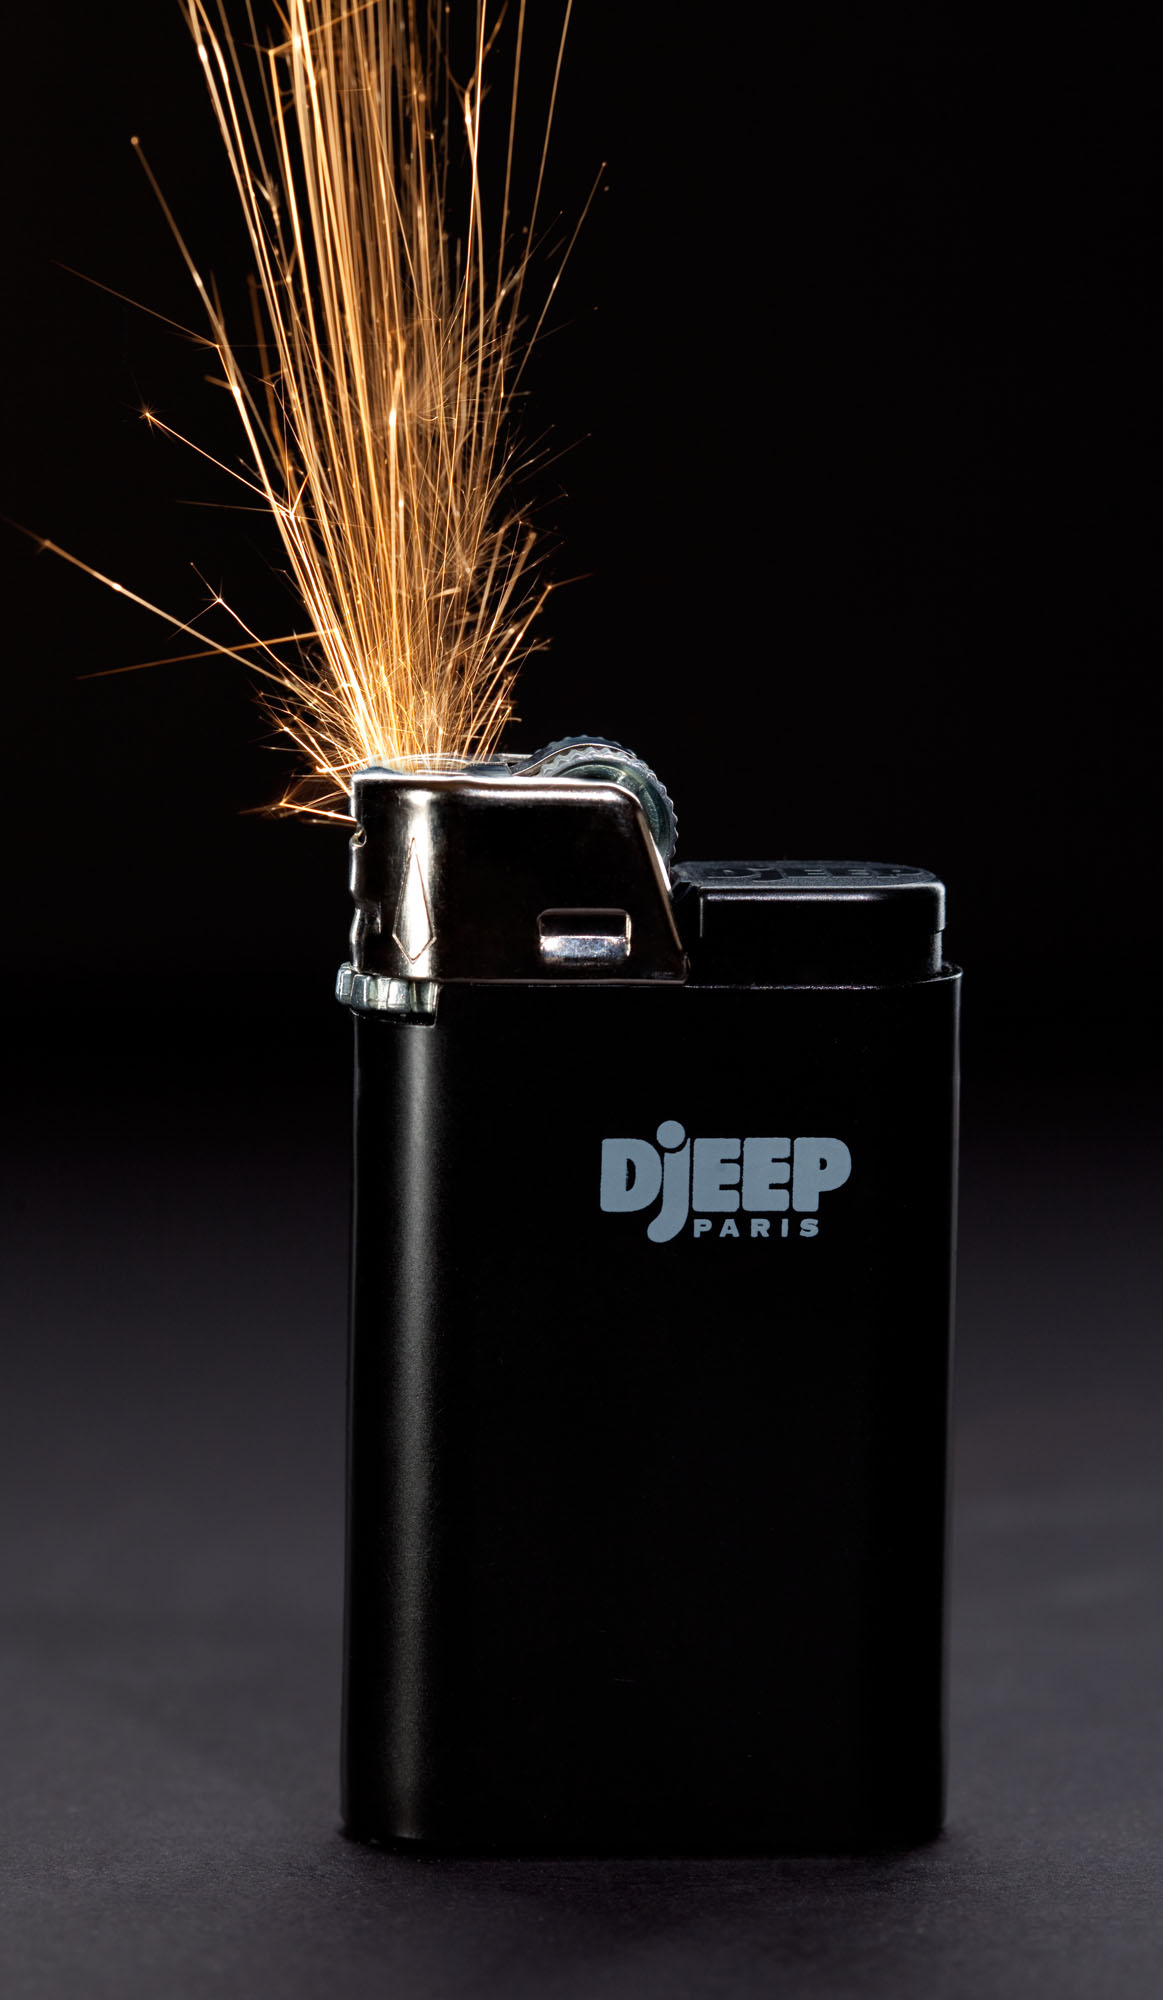 Dramatic product photography of sparks coming from Djeep Lighter | Special Effects | Fire | Shot in Denver, Colorado